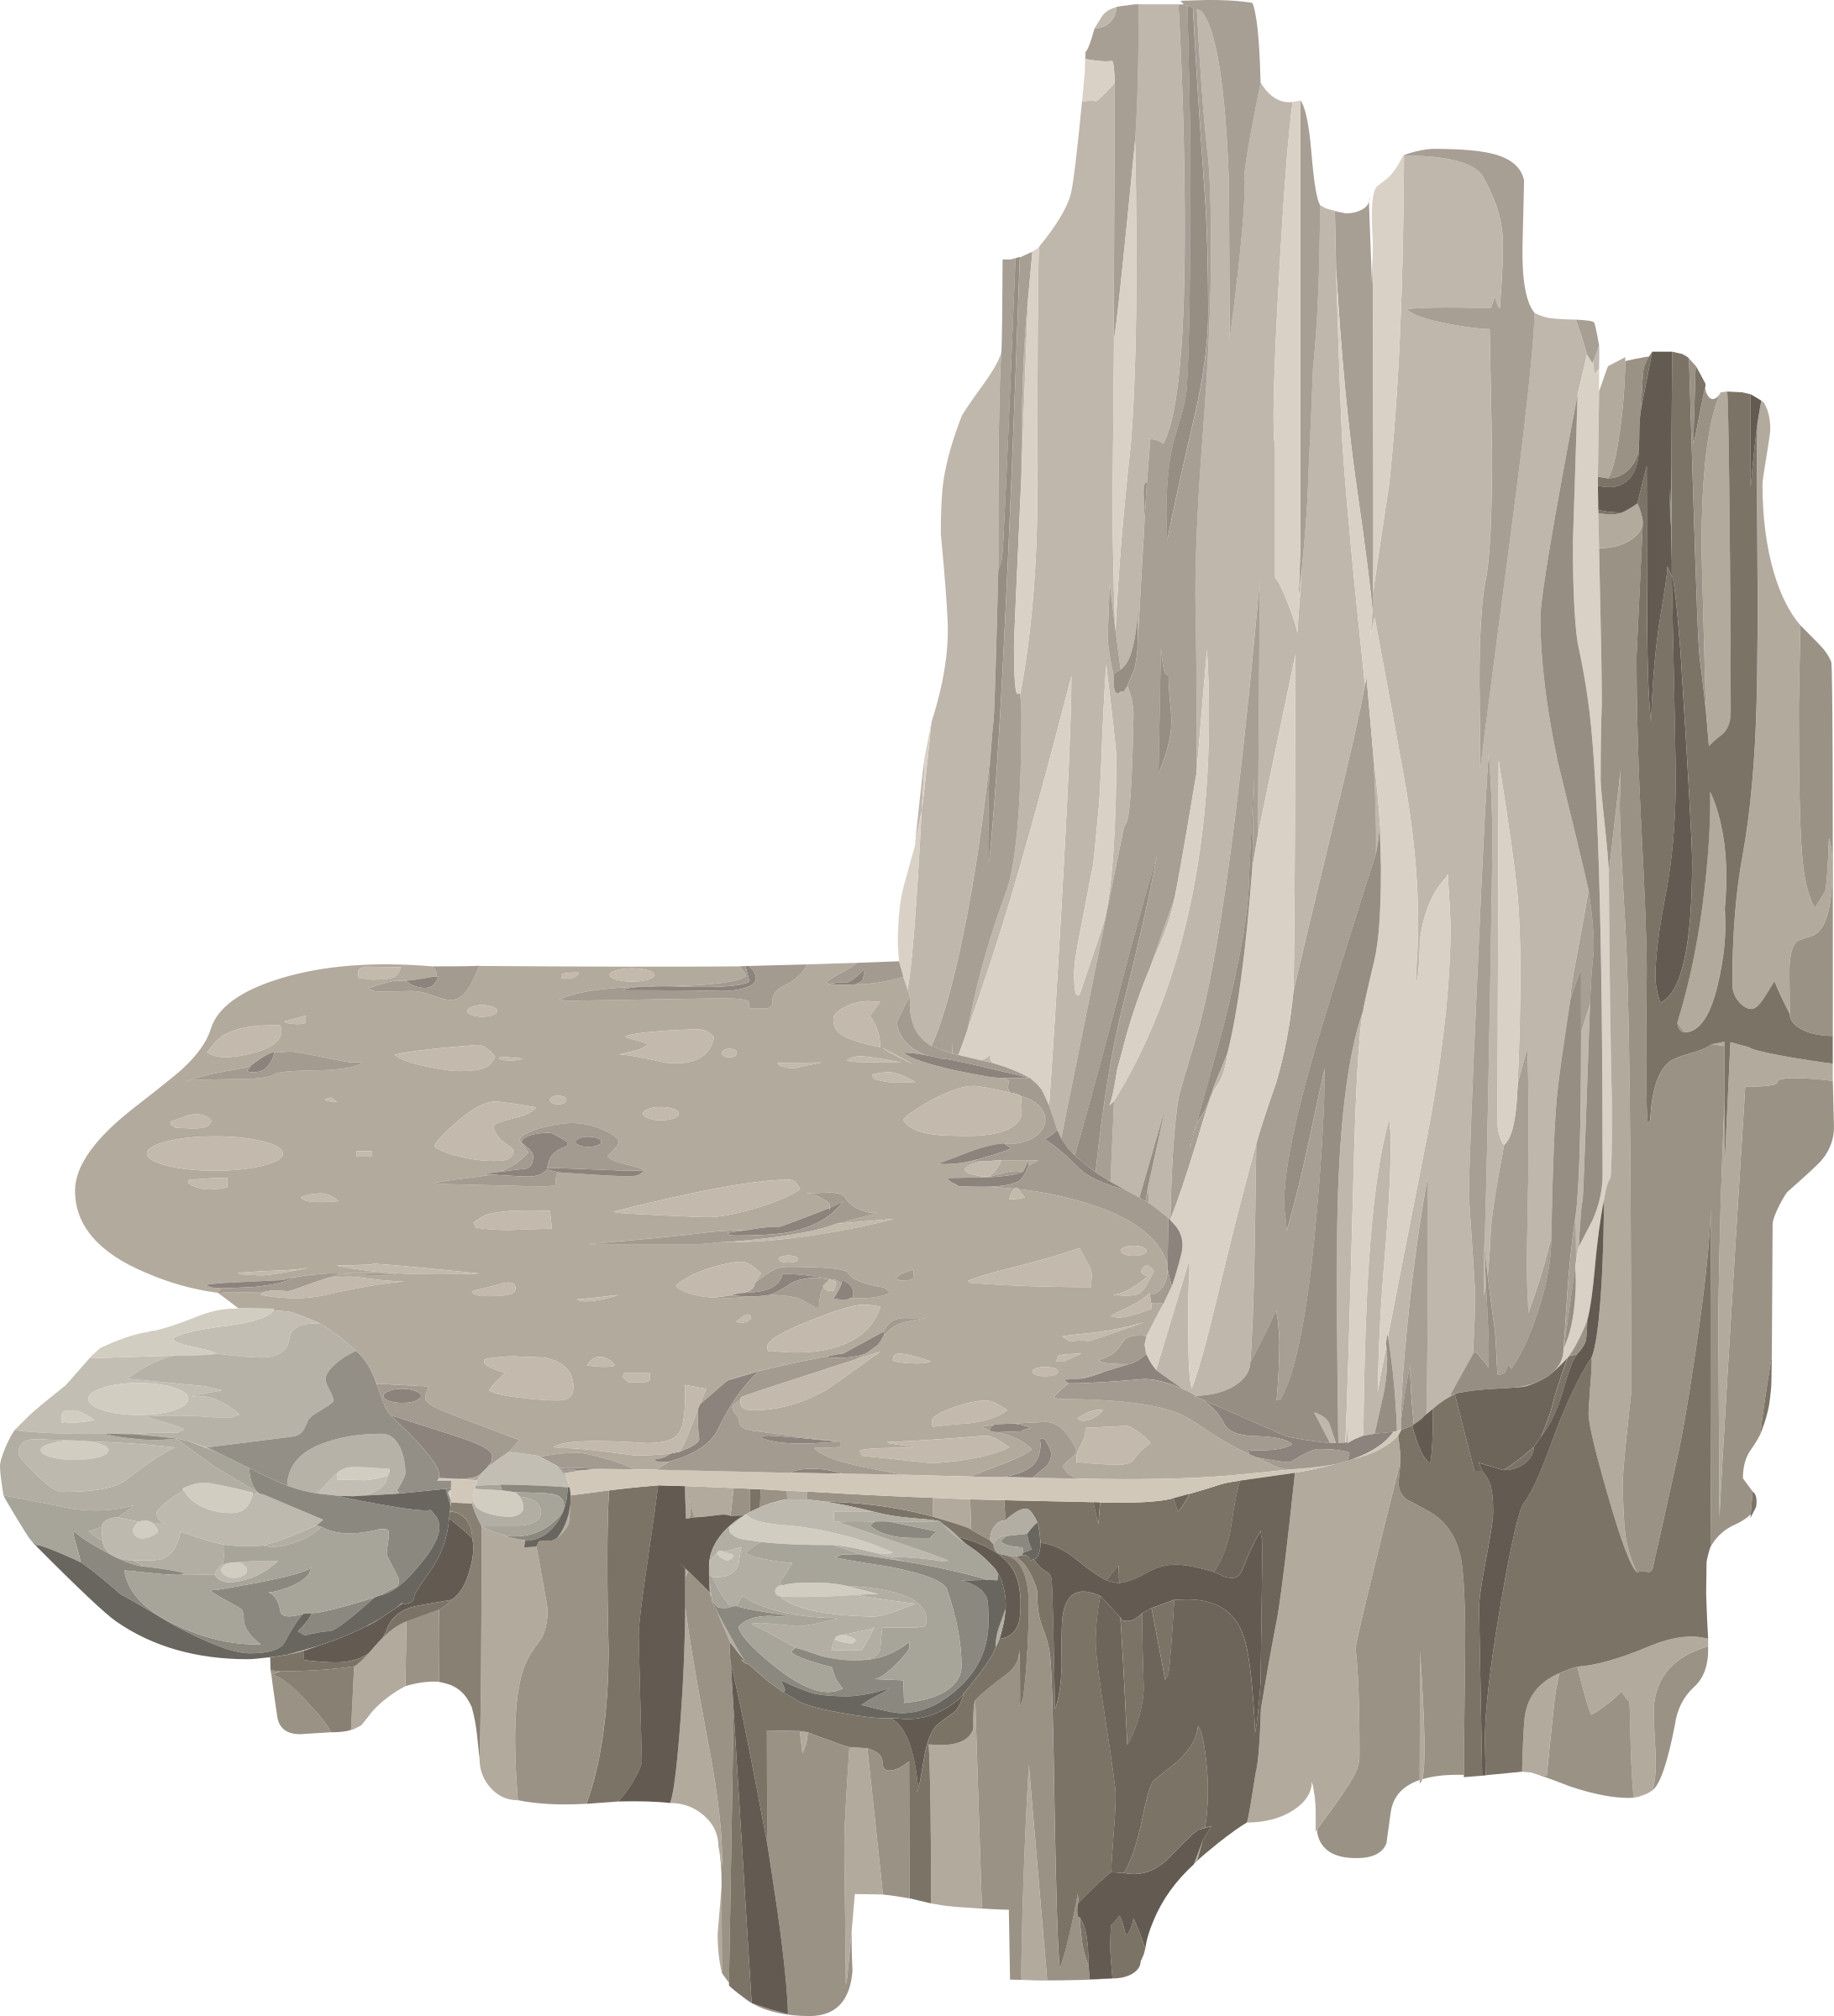 Alpine Landscape Platform Horizontal Ledge Corner Right Bottom Mountaineering 01b Al1 by glitch